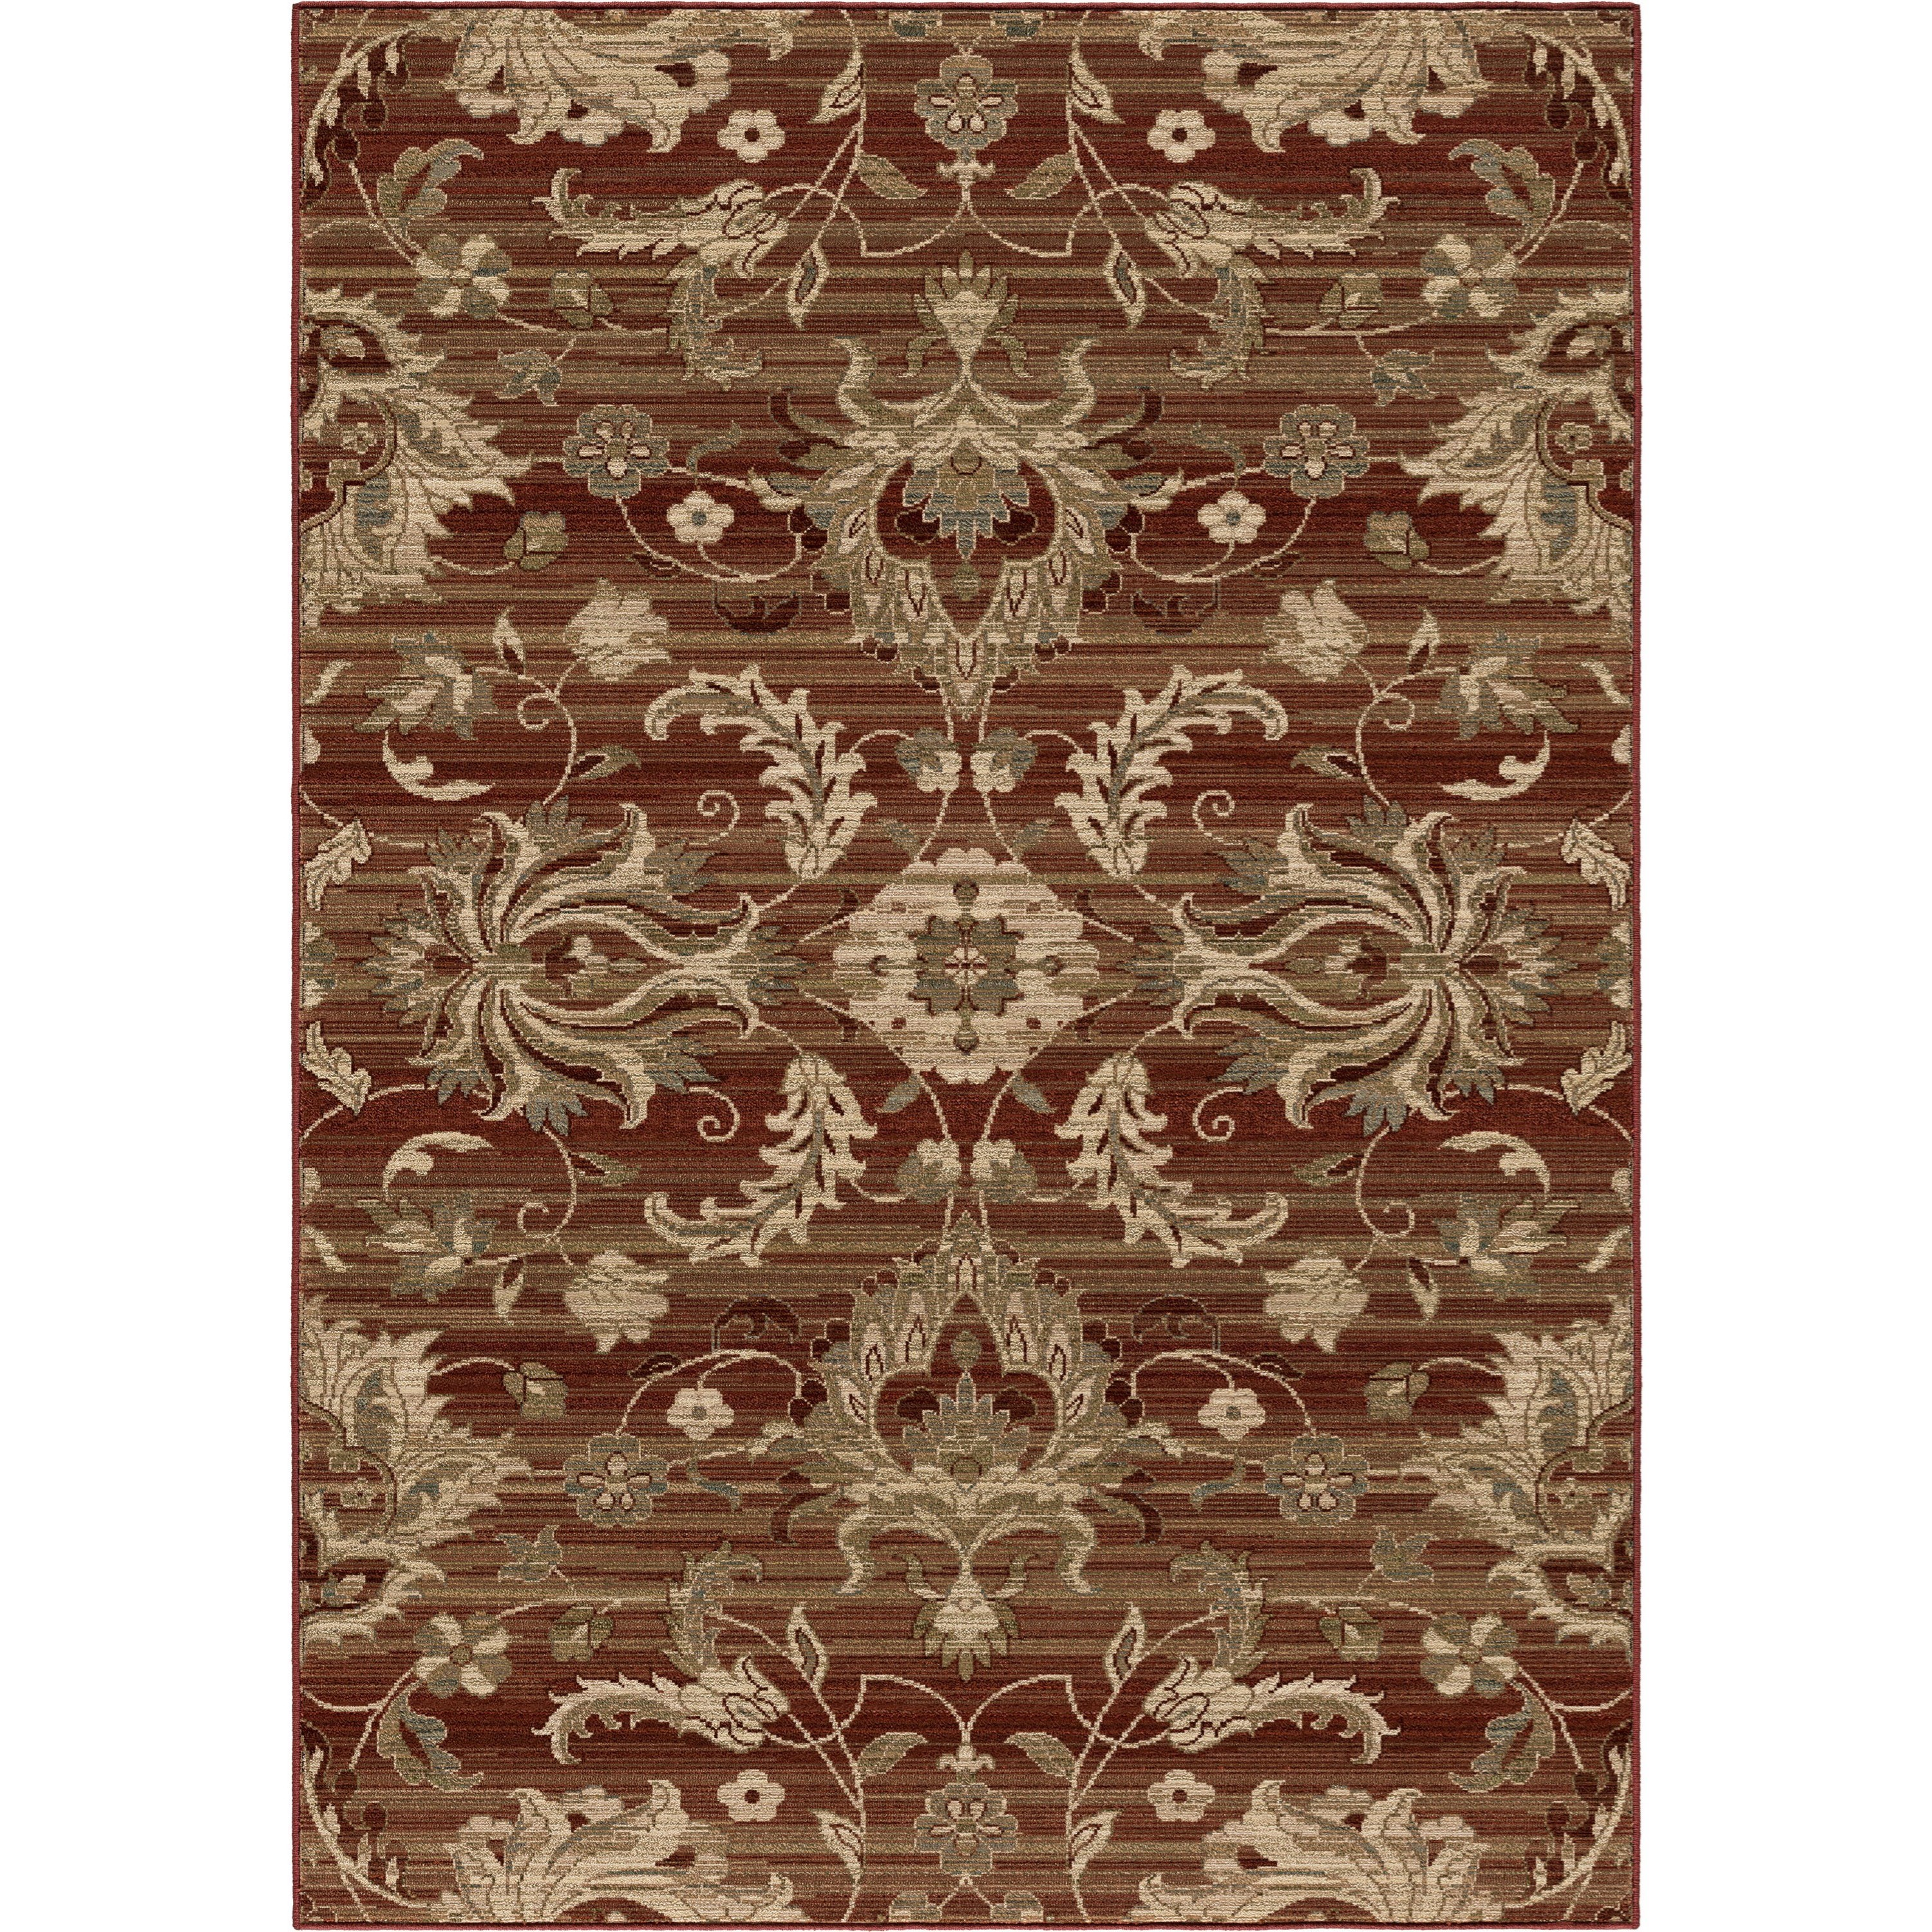 "Elegant Revival Cae Red 5'3"" x 7'6"" Rug by Orian Rugs at Mueller Furniture"